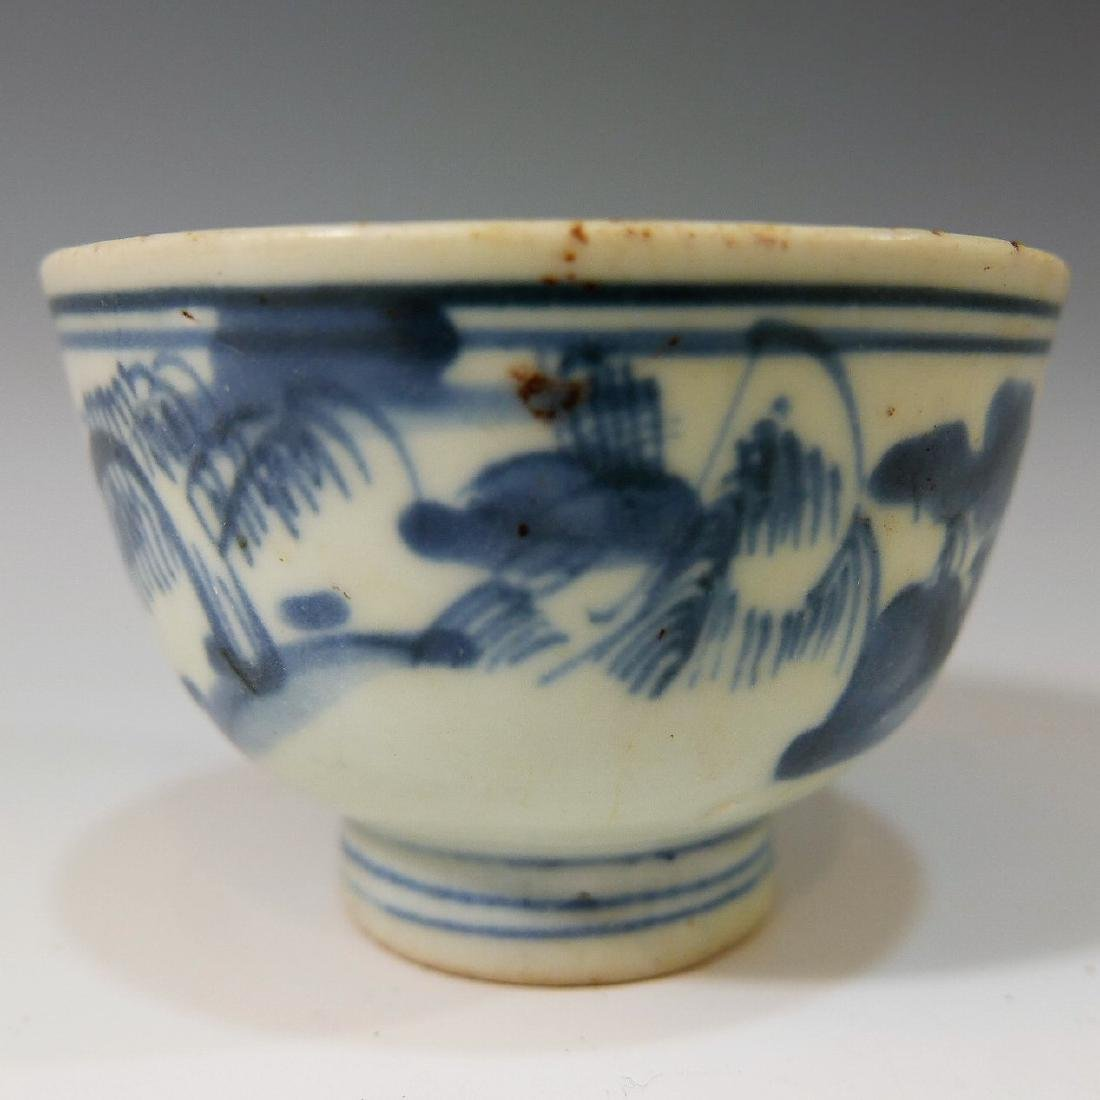 CHINESE ANTIQUE BLUE WHITE PORCELAIN CUP - KANGXI